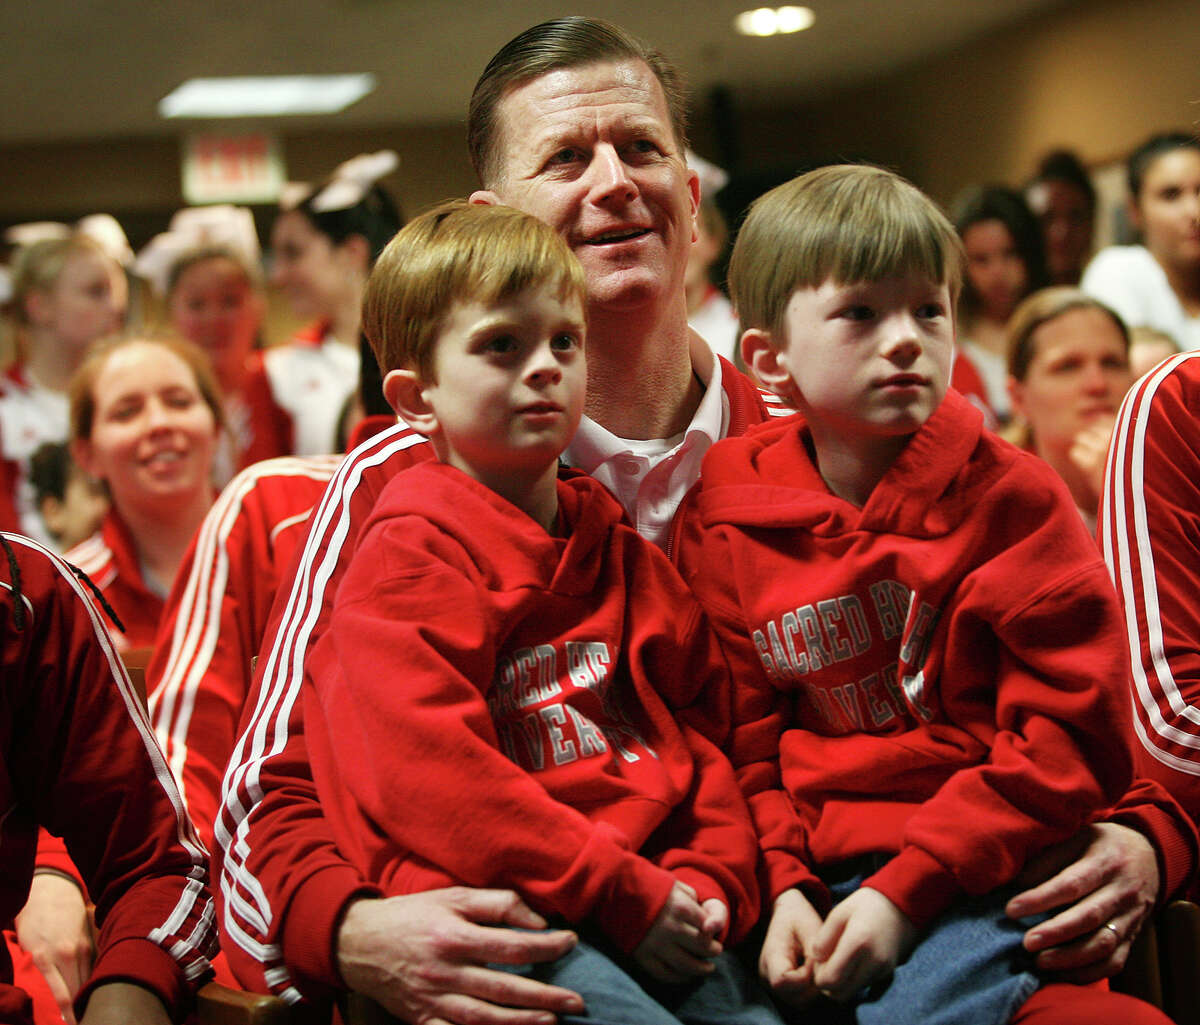 Sacred Heart women's basketball Coach Ed Swanson, holding sons Matthew, 4, and Connor, 5, Callan Taylor, and Katie Shepard awaits the announcement of his team's seeding in the NCAA Women's Basketball Tournament on Monday, March 12, at Sacred Heart University in Fairfield.